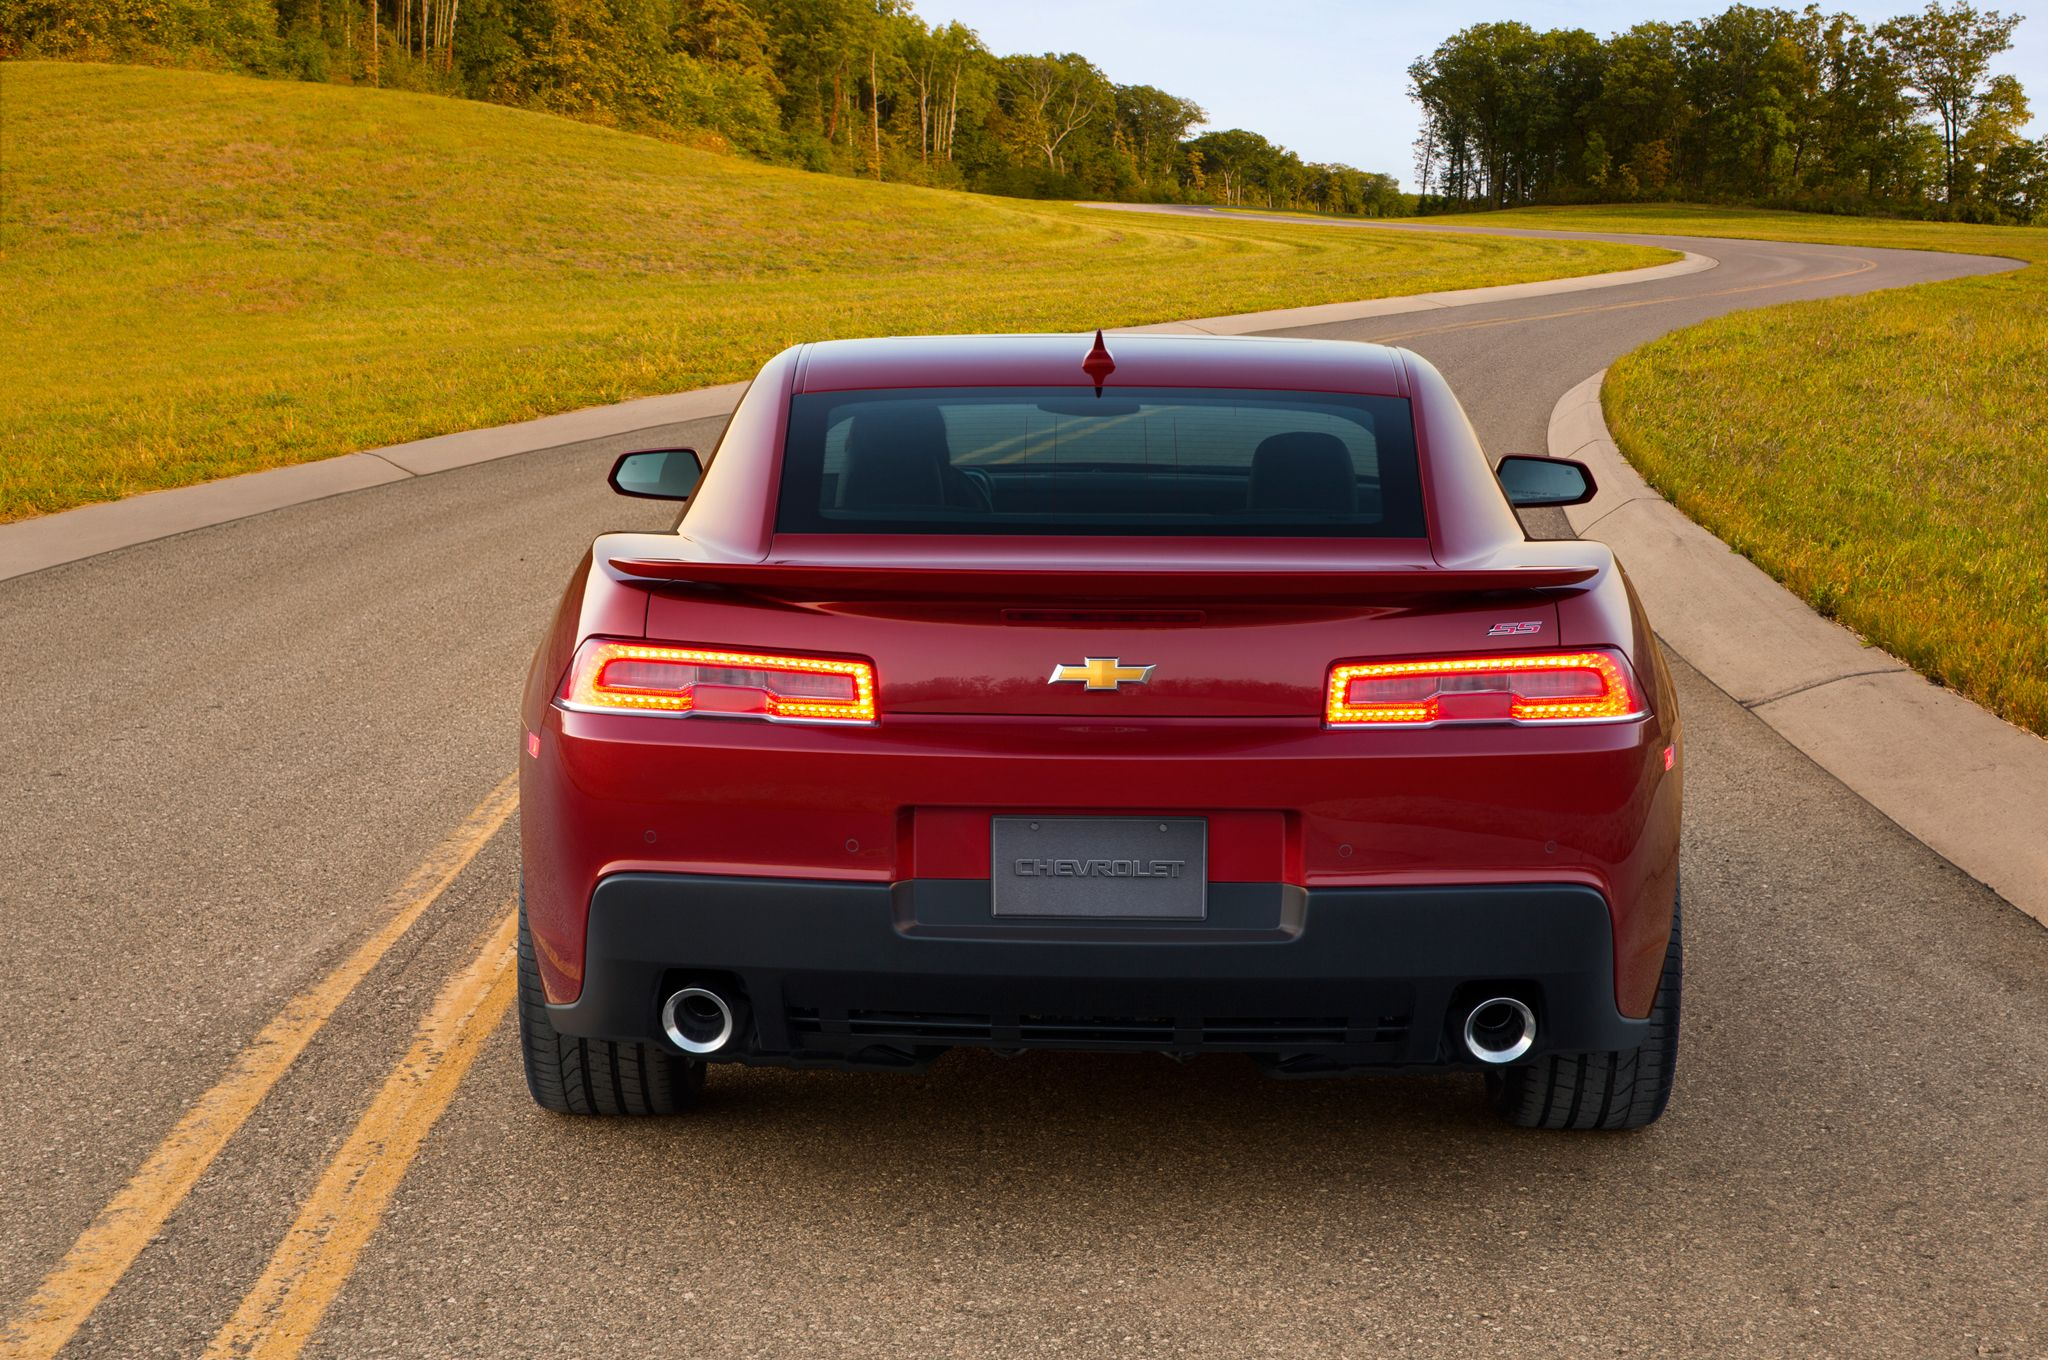 2015 camero 2015 Chevrolet Camaro Ss Rear End Camero